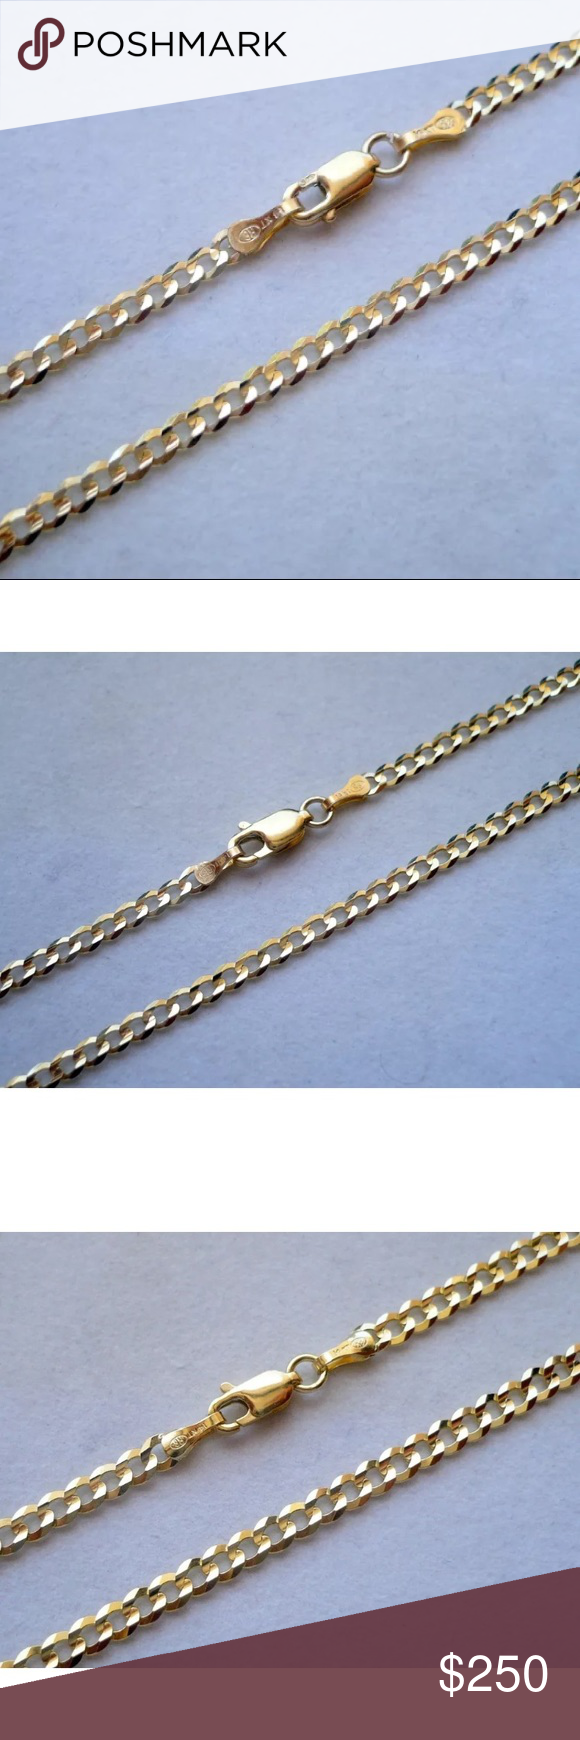 10k Solid Gold 3 5mm Cuban Link Chain 20 Cuban Link Chain Gold Cuban Link Chain Solid Gold